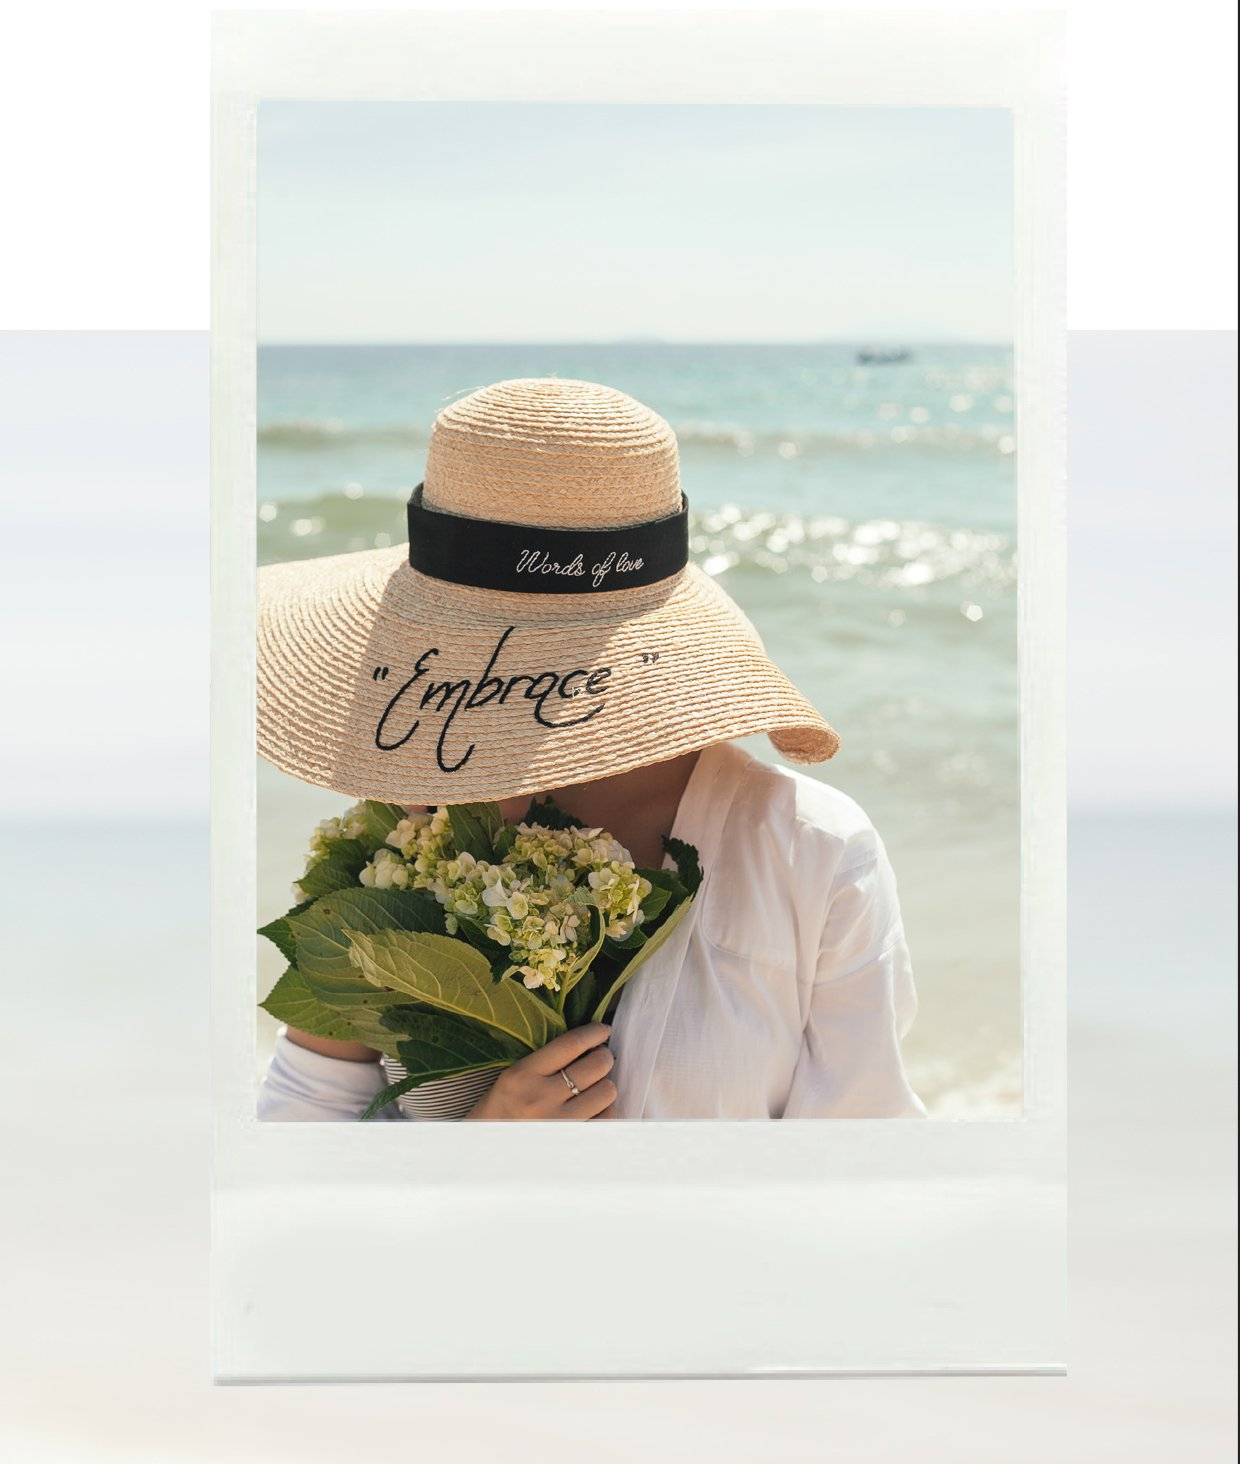 words_of_love_embrace_hat_with_beach_and_flower_-_leinne